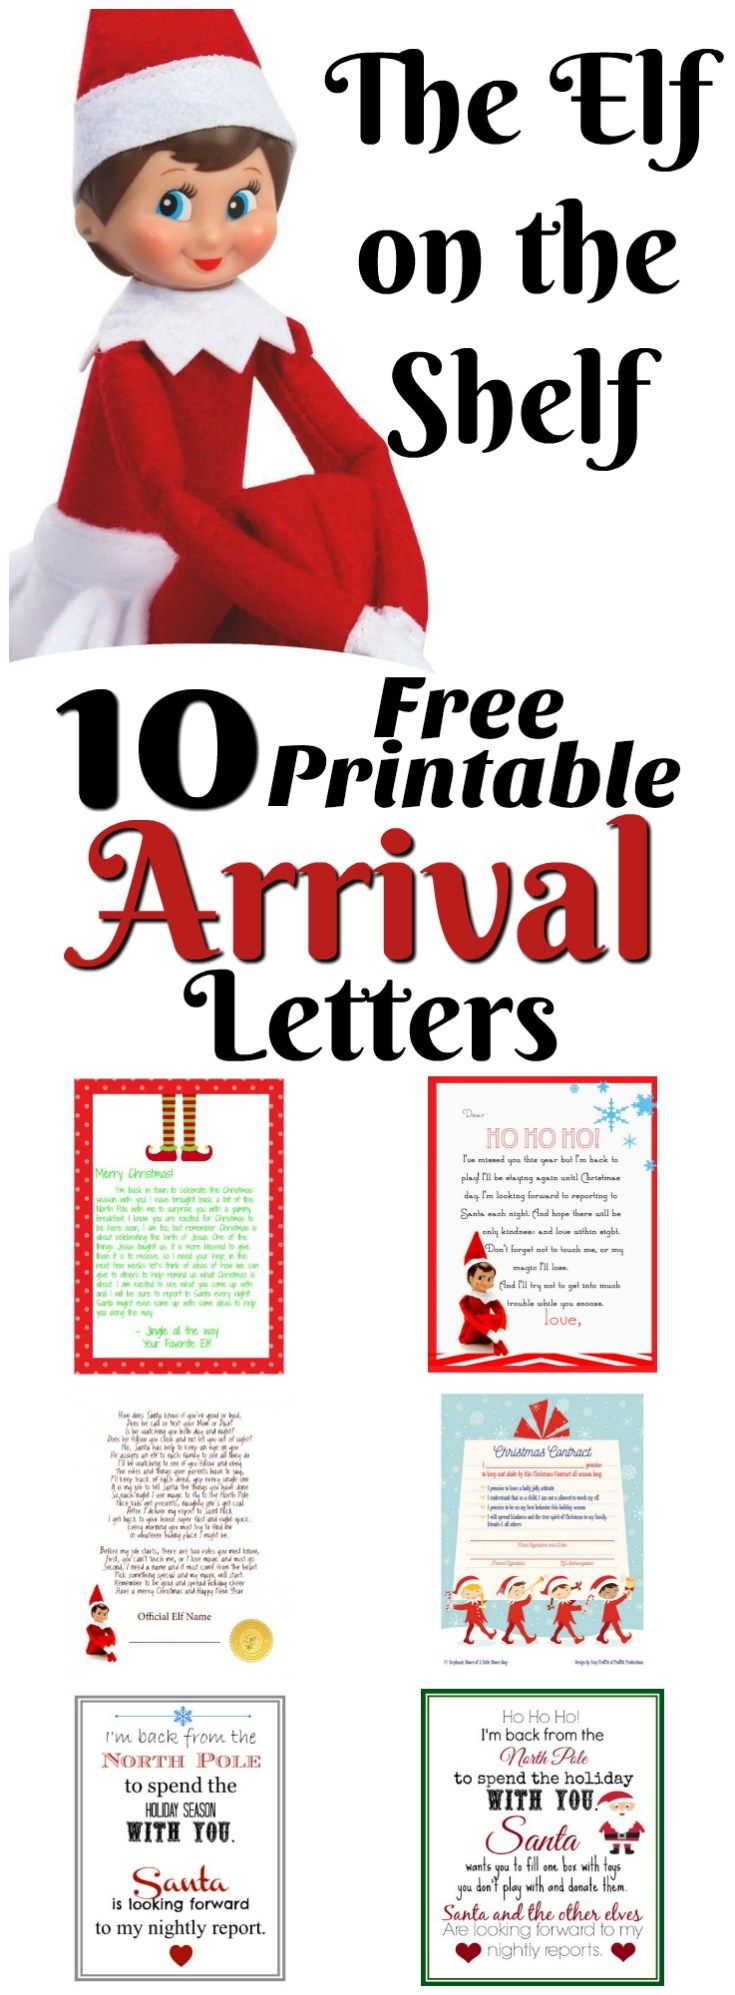 elf on the shelf letters printable 25 best ideas about free letters from santa on 10180 | d620563973797435a4dcf51d71275400